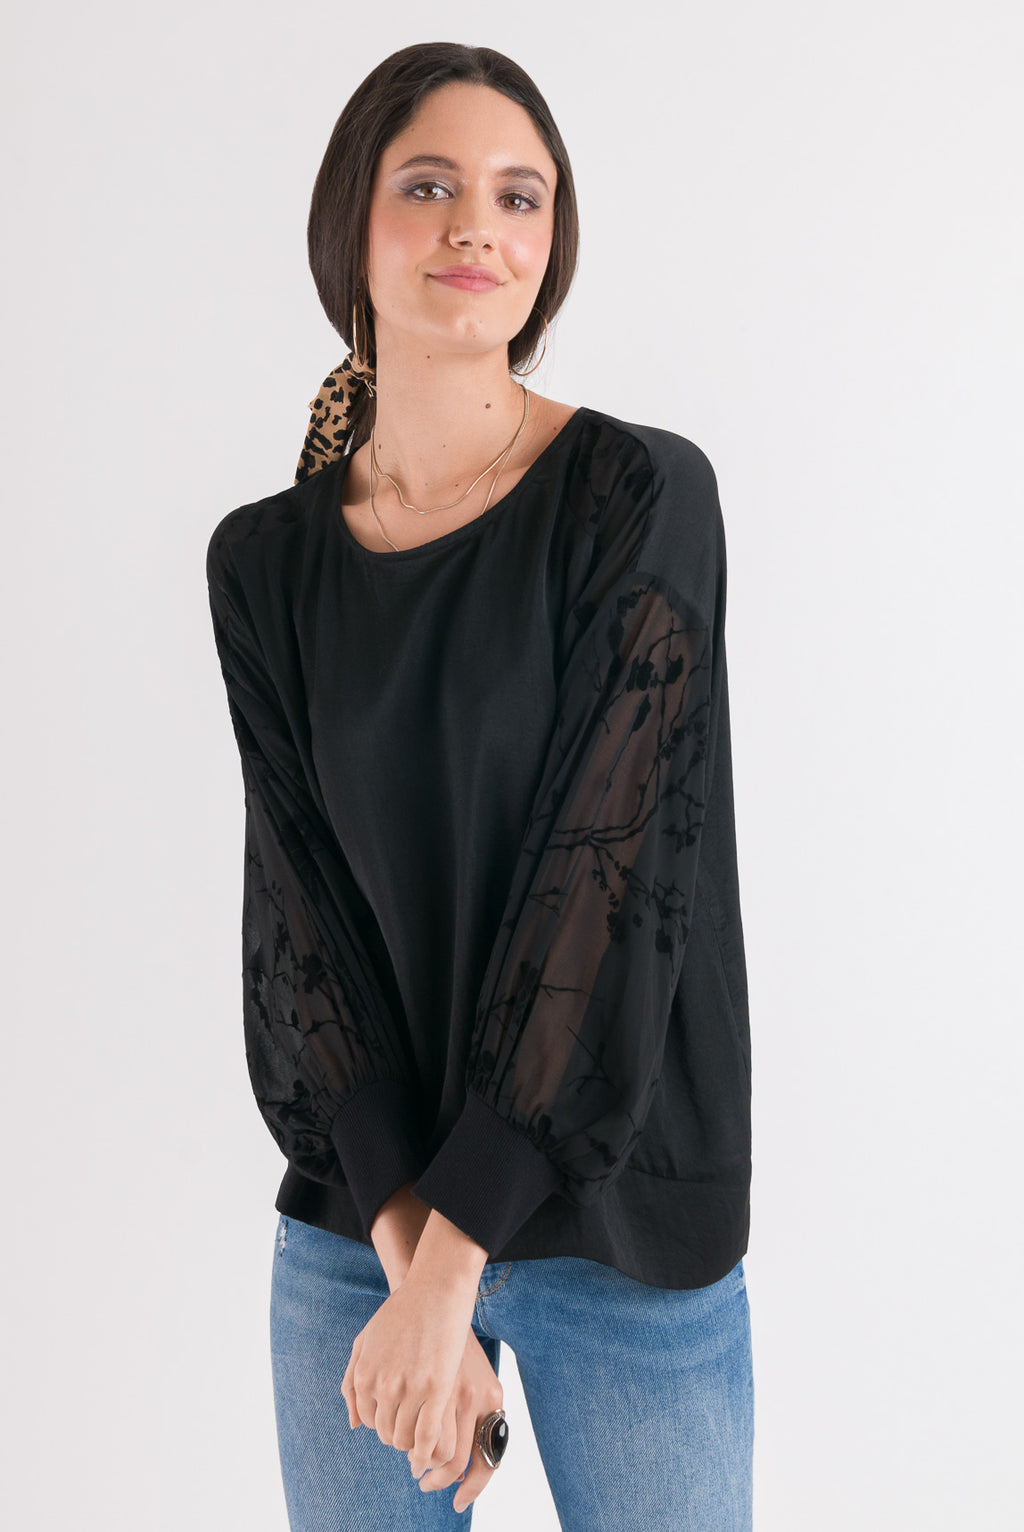 Print Sleeve Top - Black